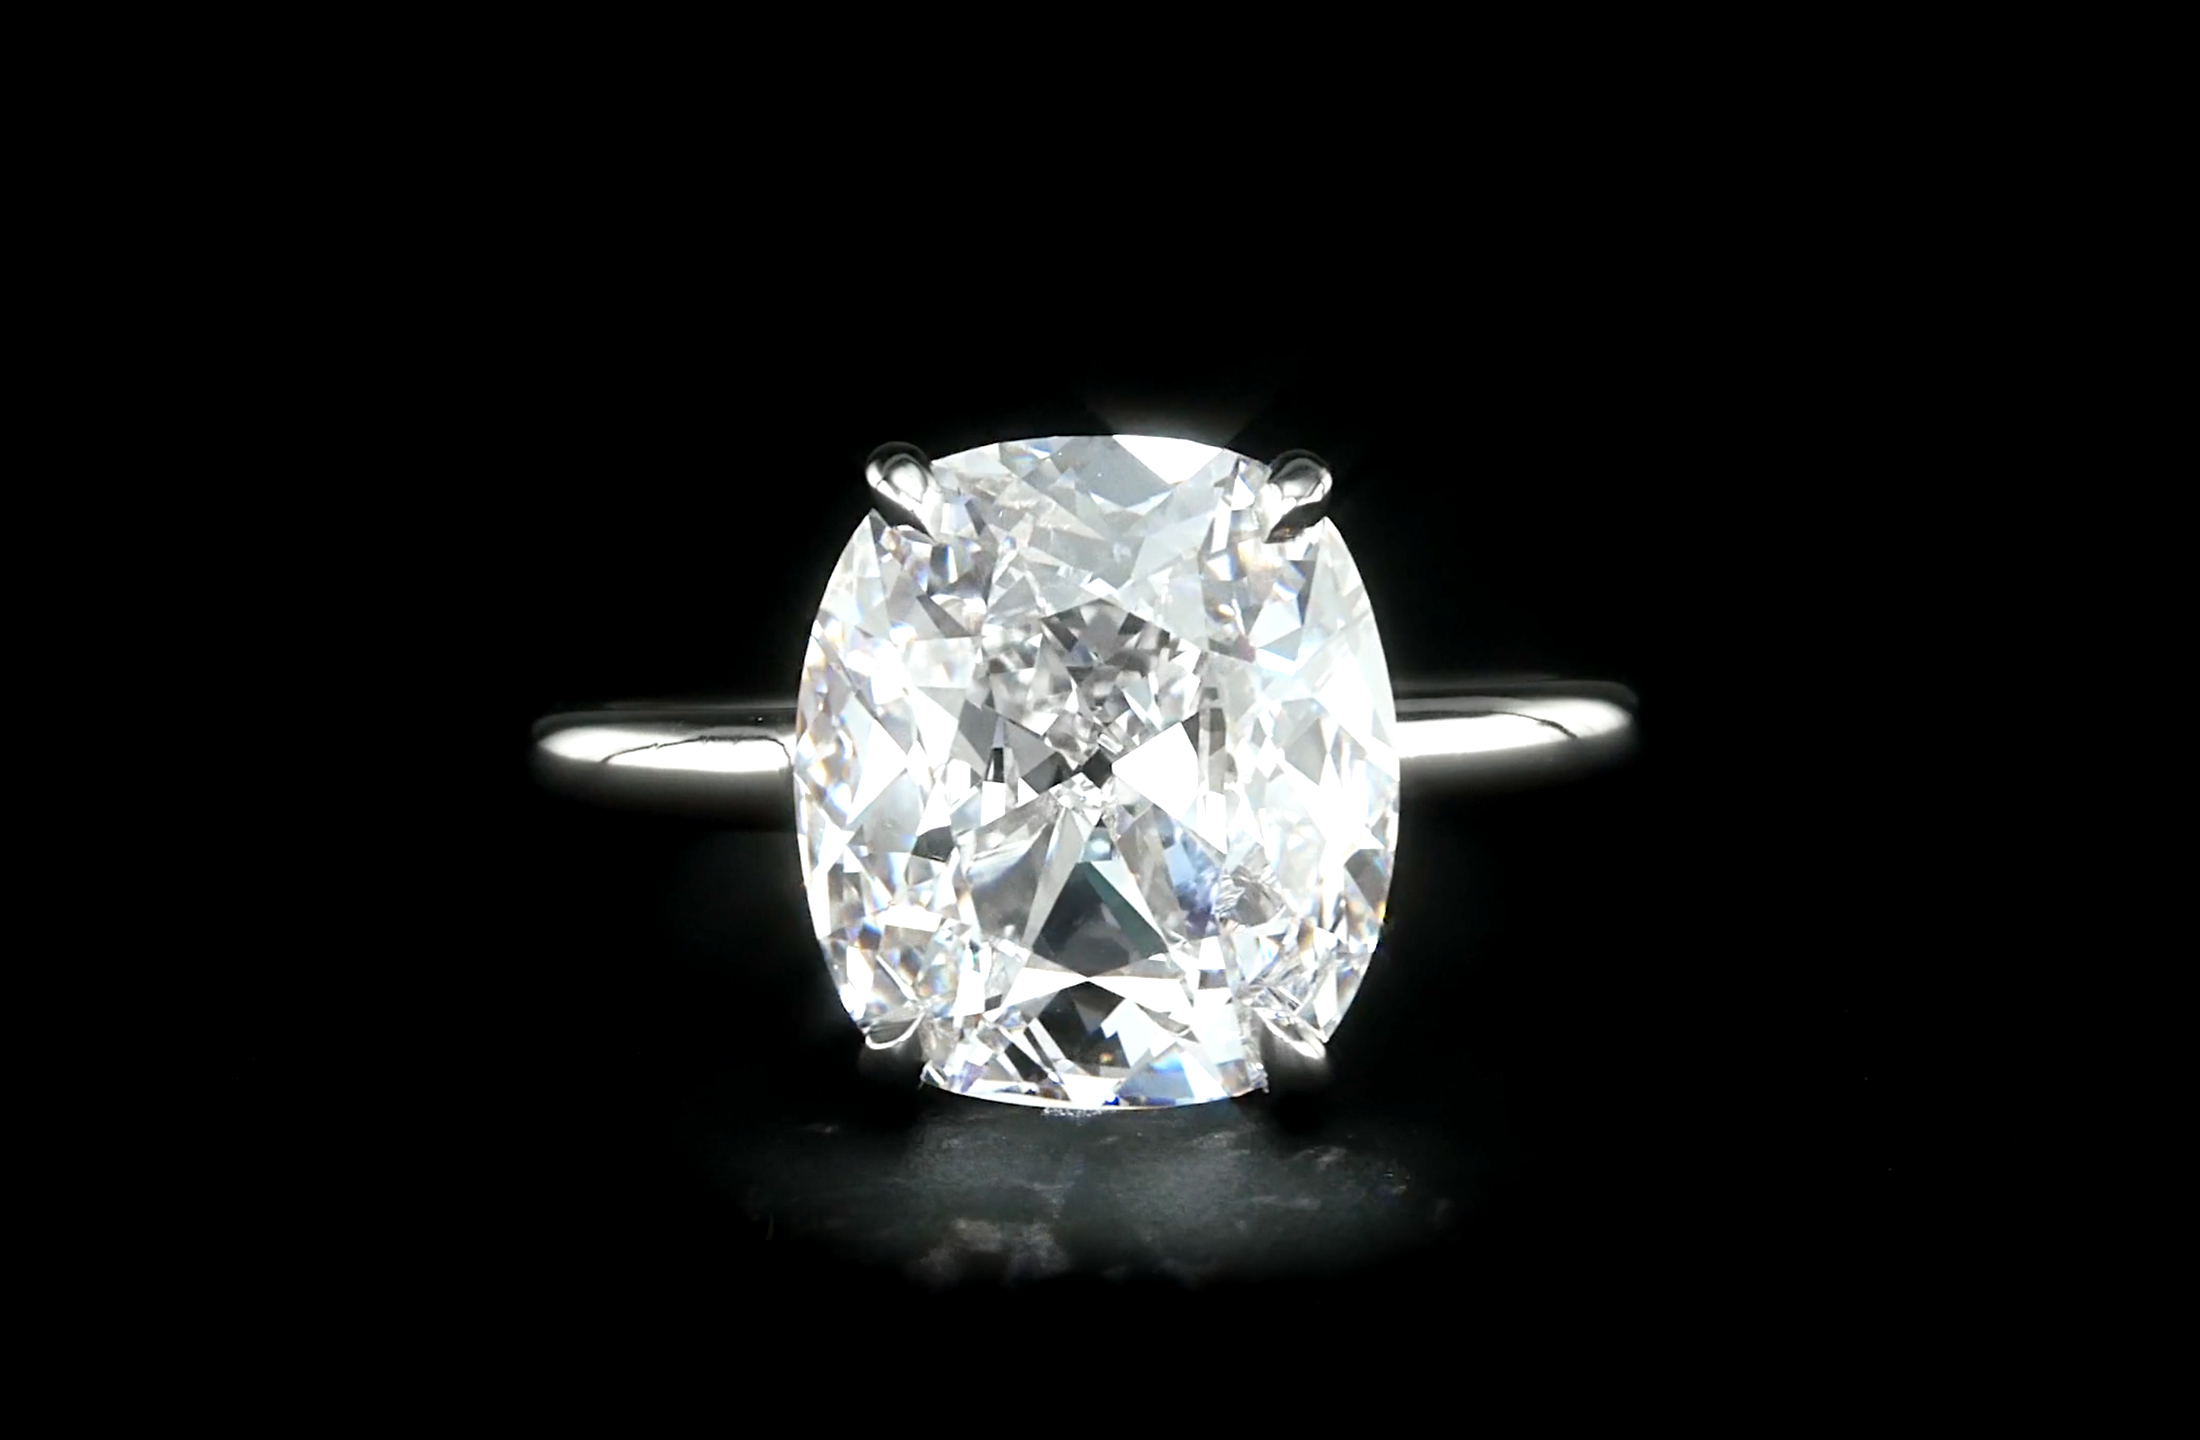 5 Carat Cushion Halo Diamond Runway The Finest Diamonds In The World